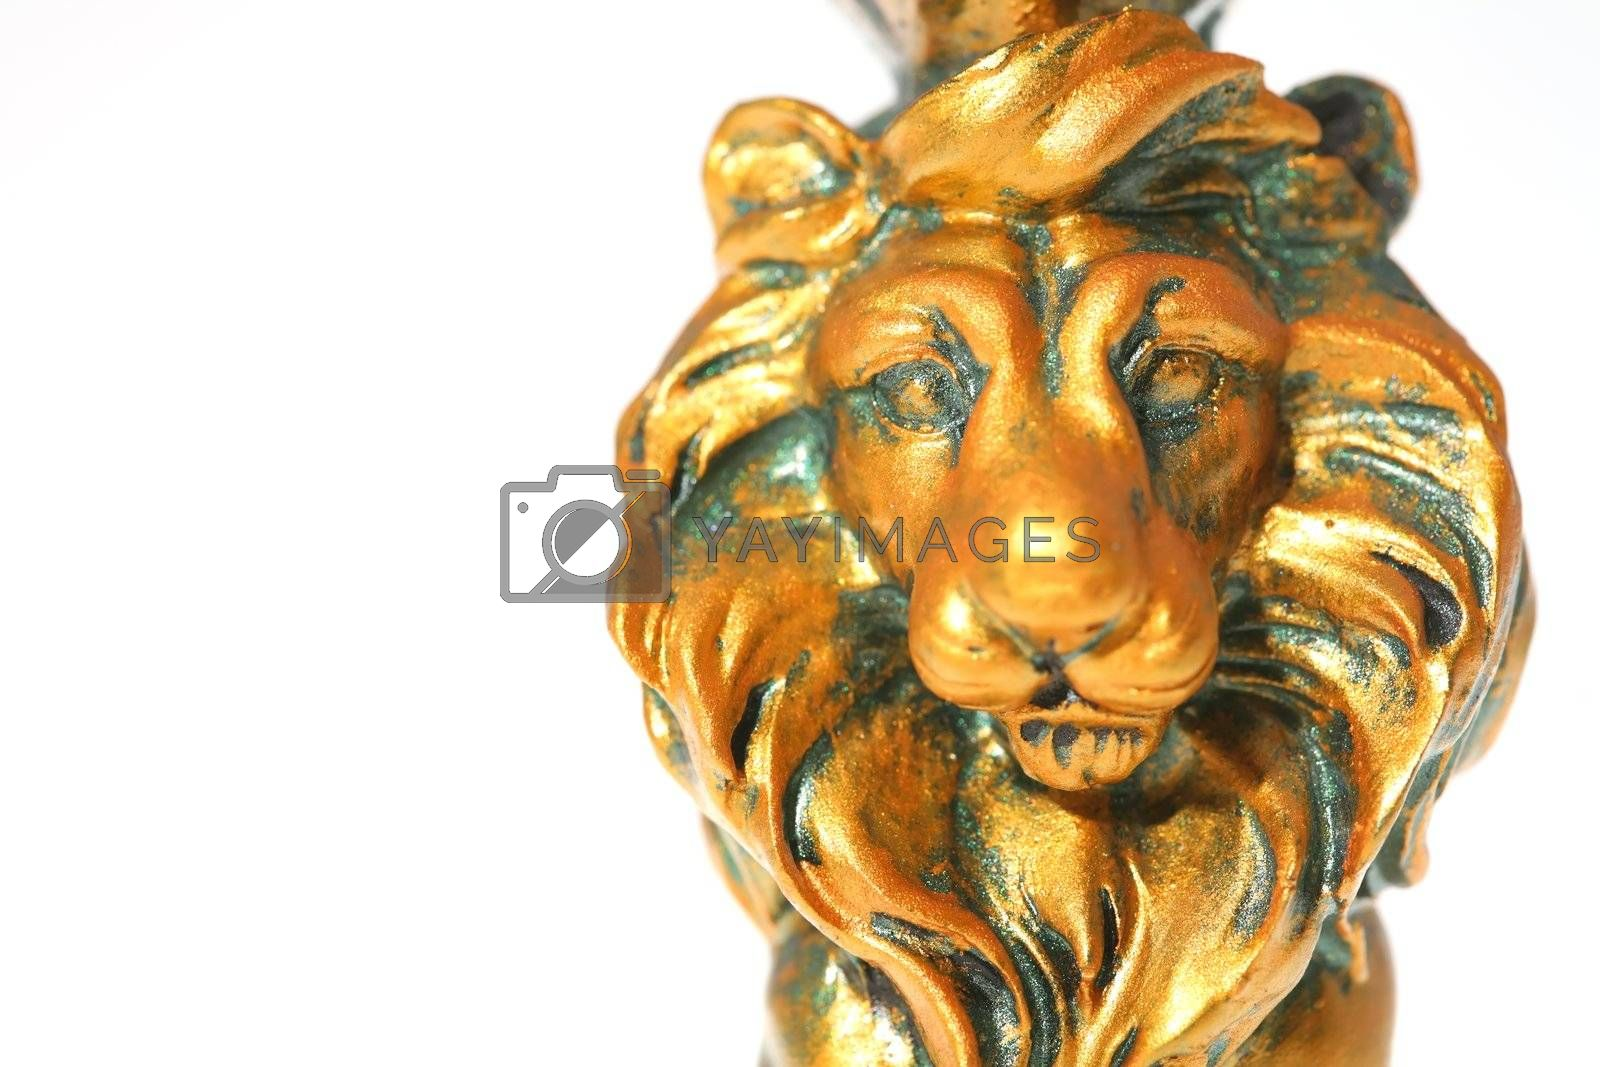 Royalty free image of Golden Lion by Astroid